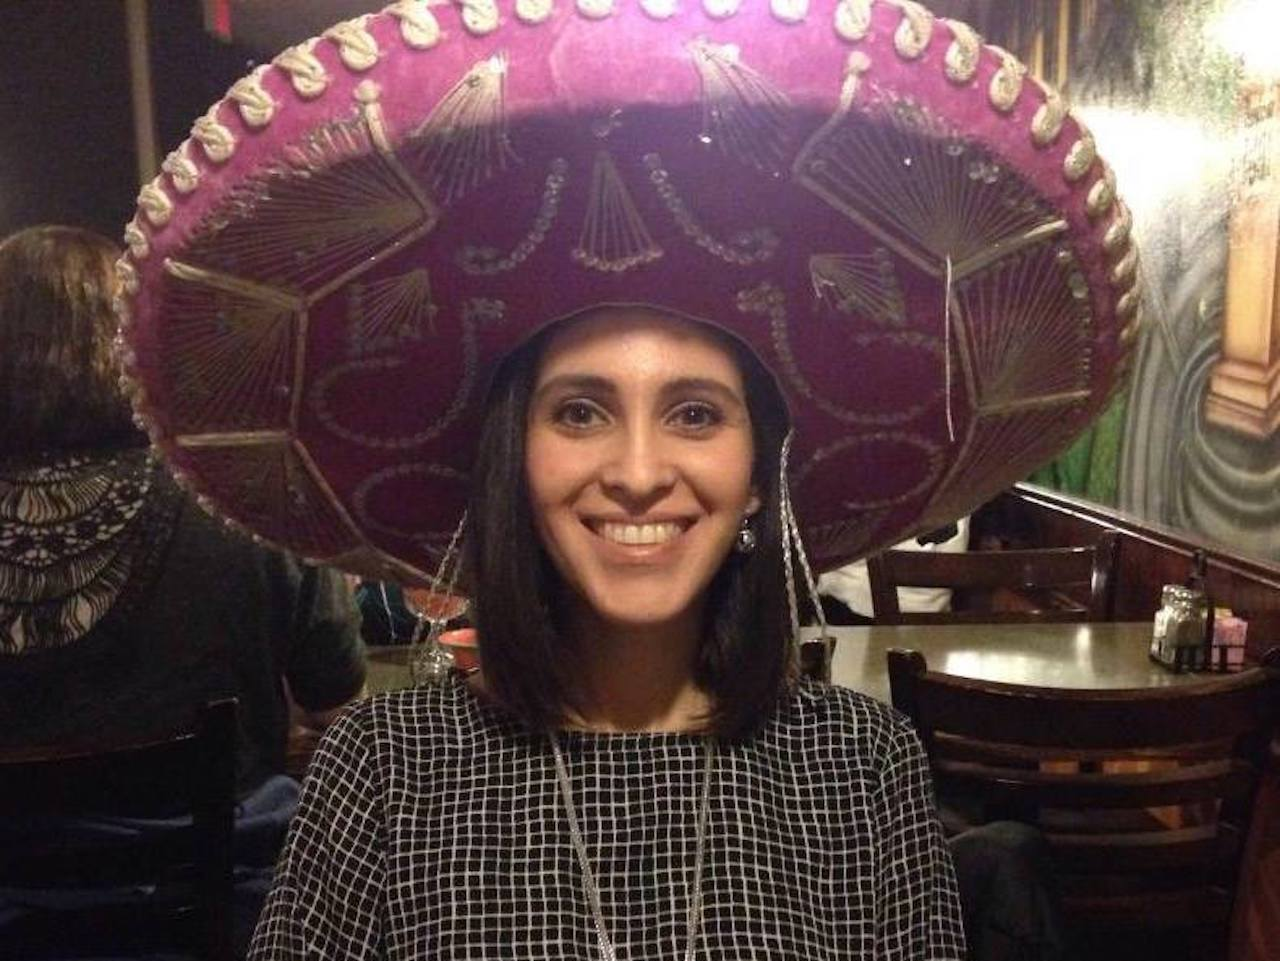 me wearing a pink sombrero at a Mexican restaurant